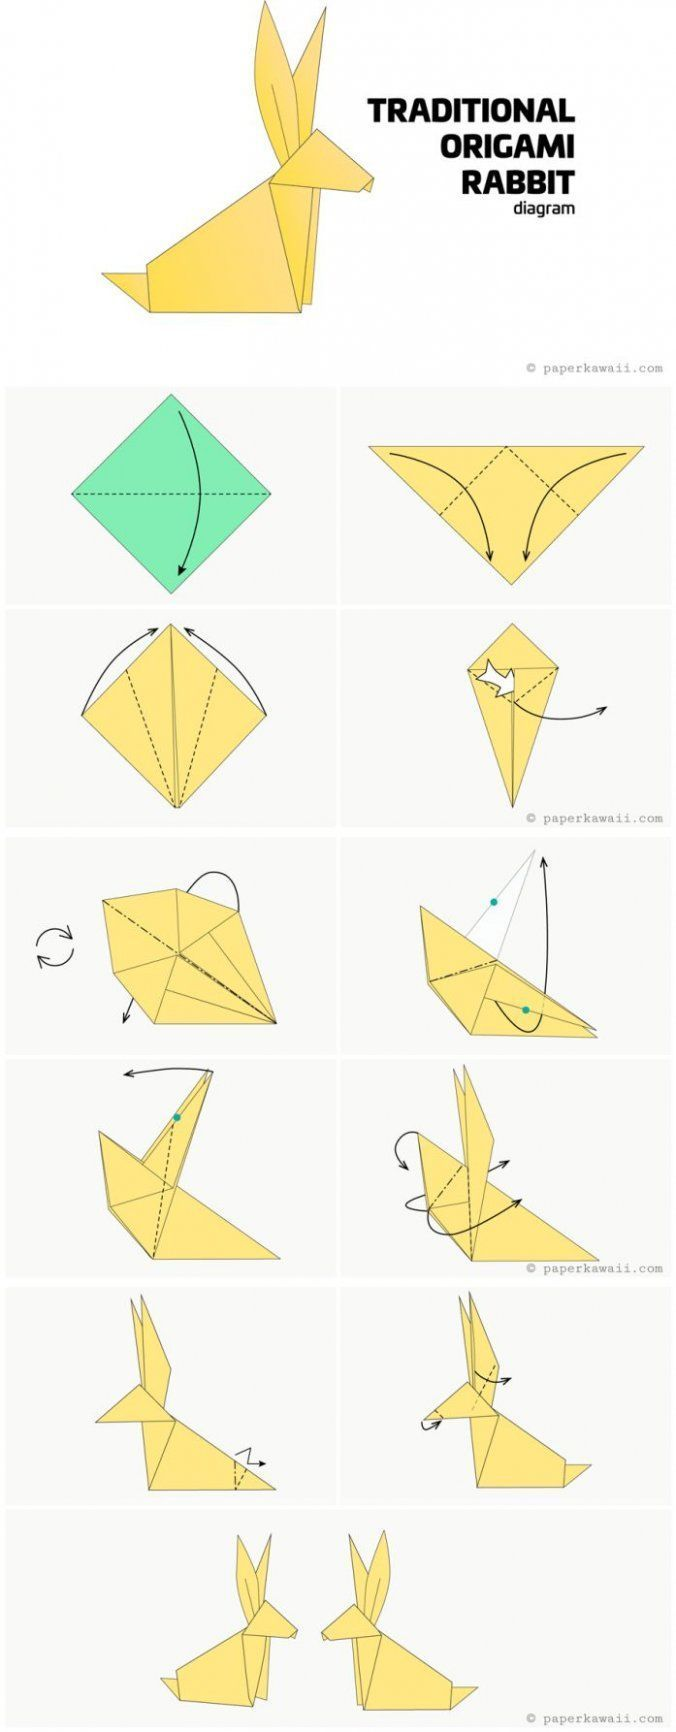 27 Inspired Photo for Origami Tutorial Einfache #Einfache #Inspirierte #Origa ...   - Origami Anleitung - #Anleitung #Einfache #Inspired #inspirierte #Origa #Origami #photo #Tutorial #origamianleitungen